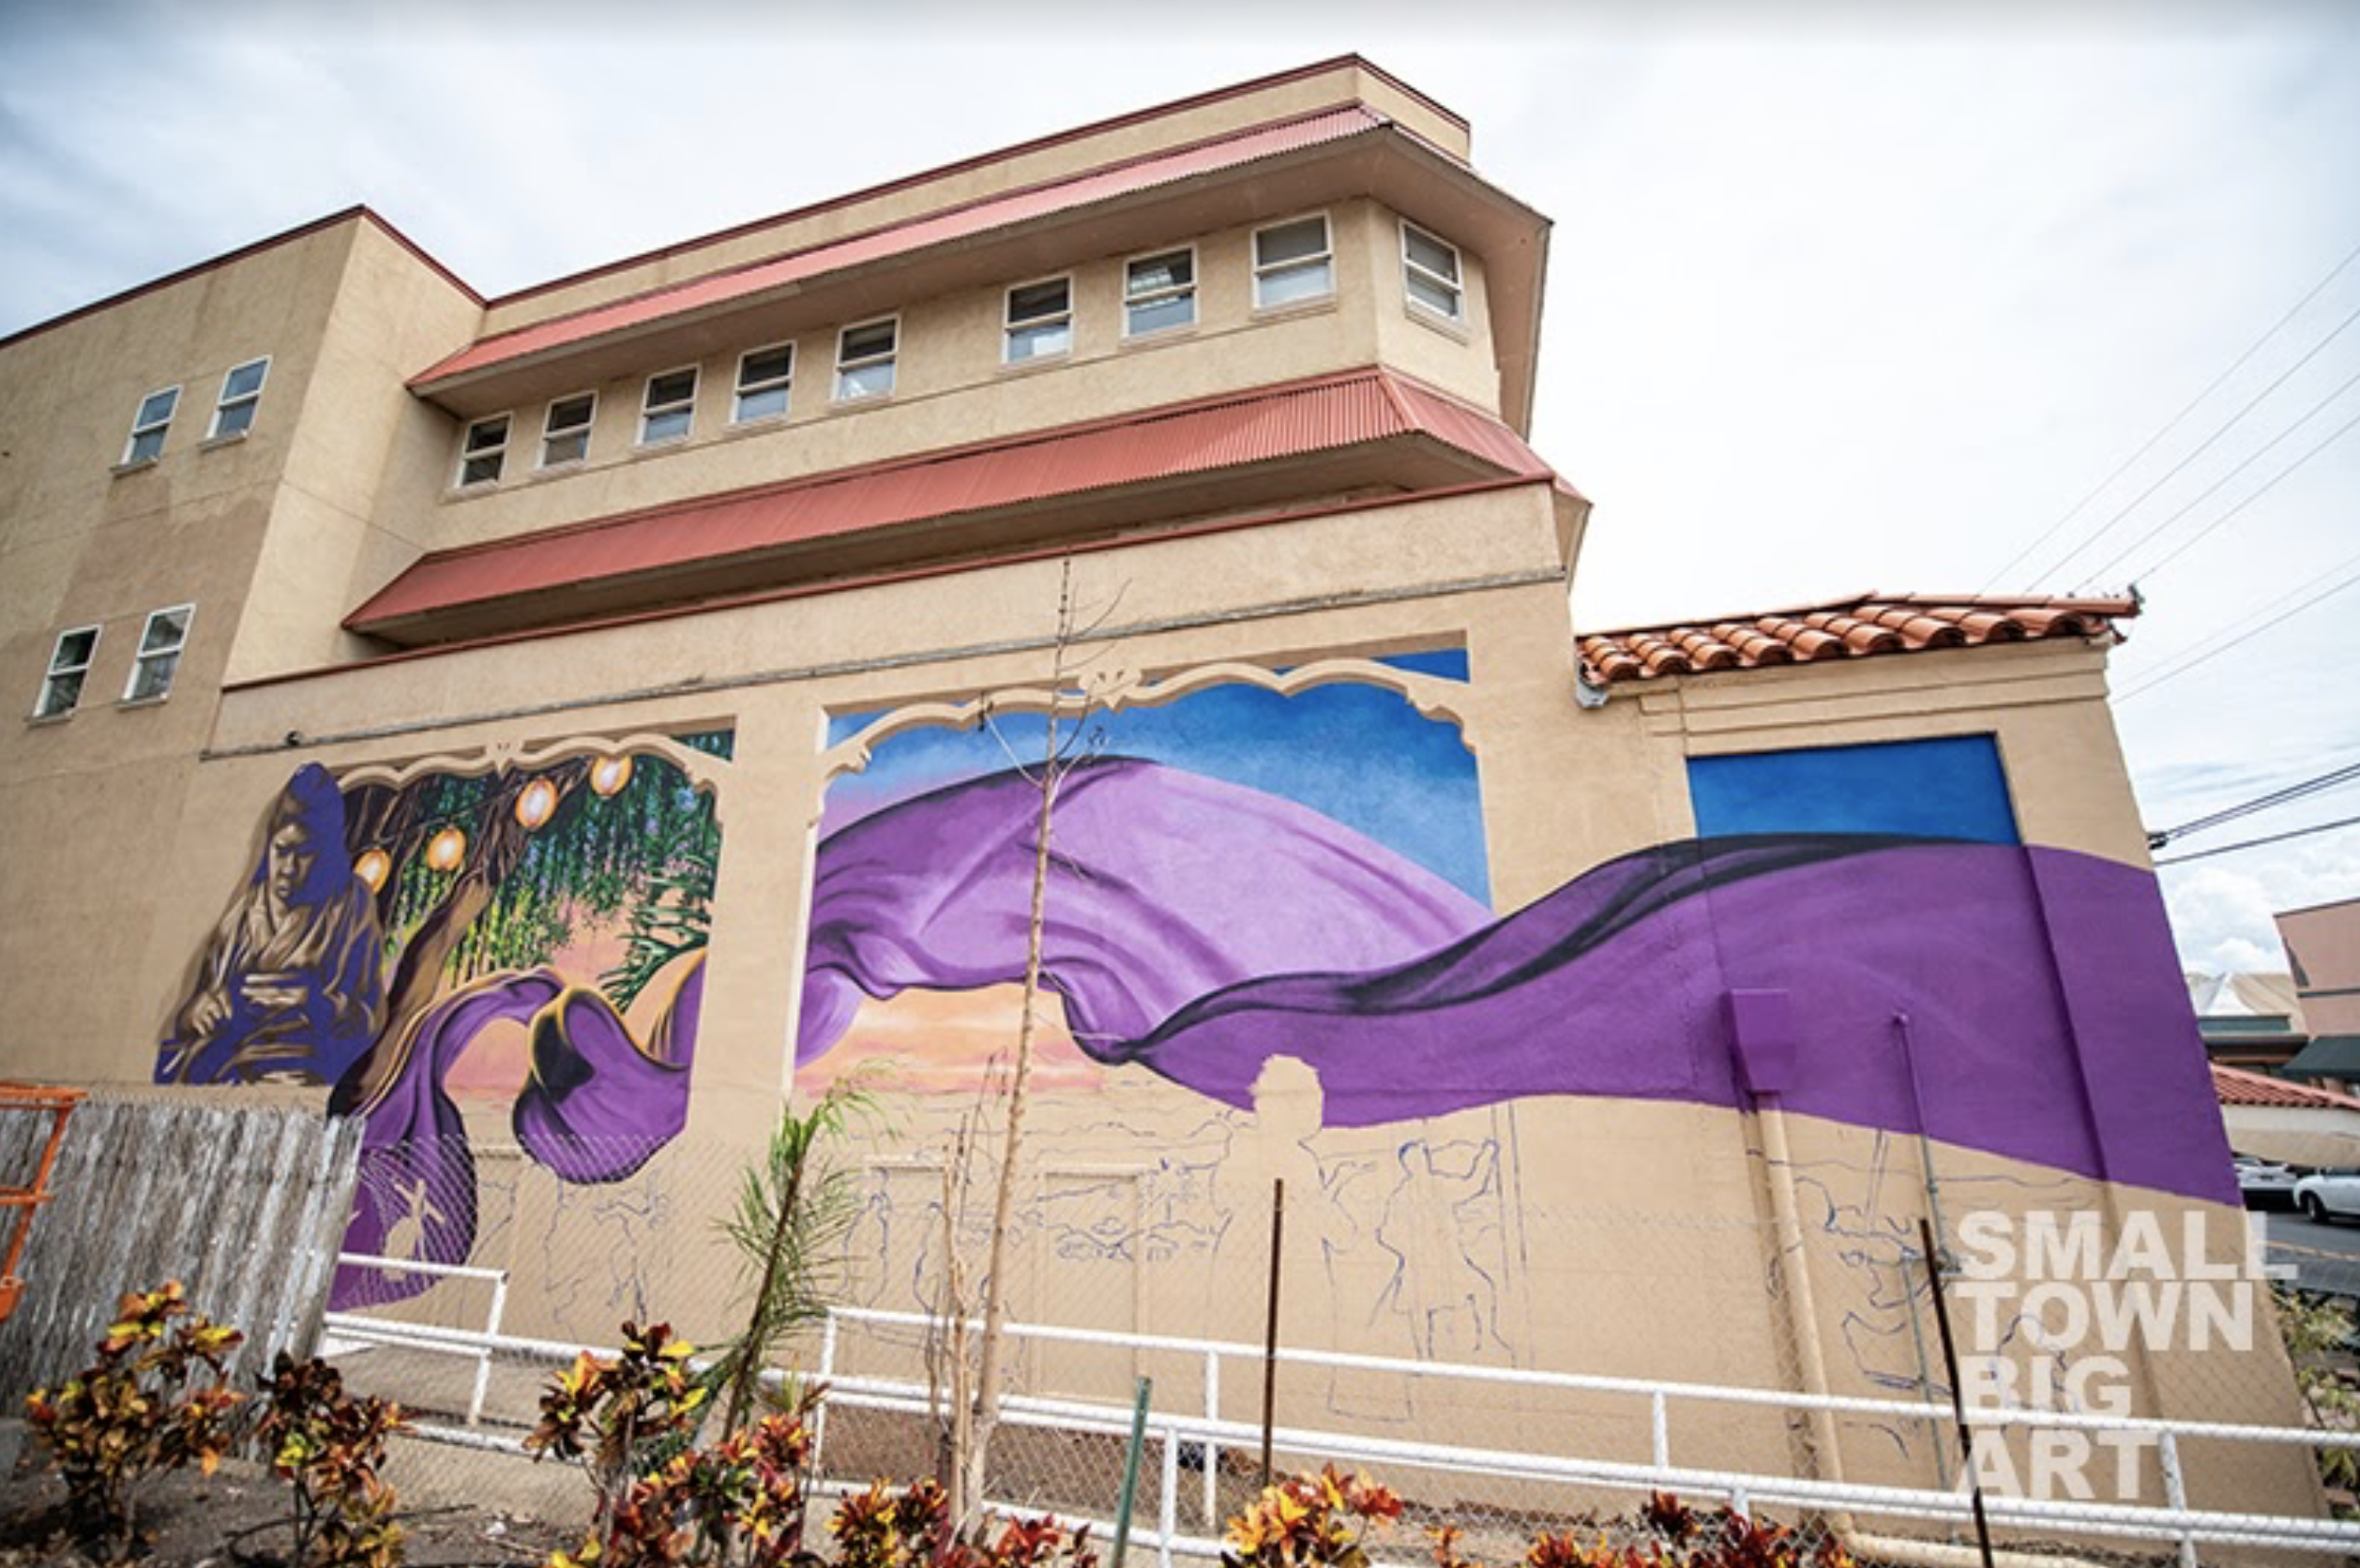 SMALL TOWN * BIG ART Nears Completion of New Wailuku Mural